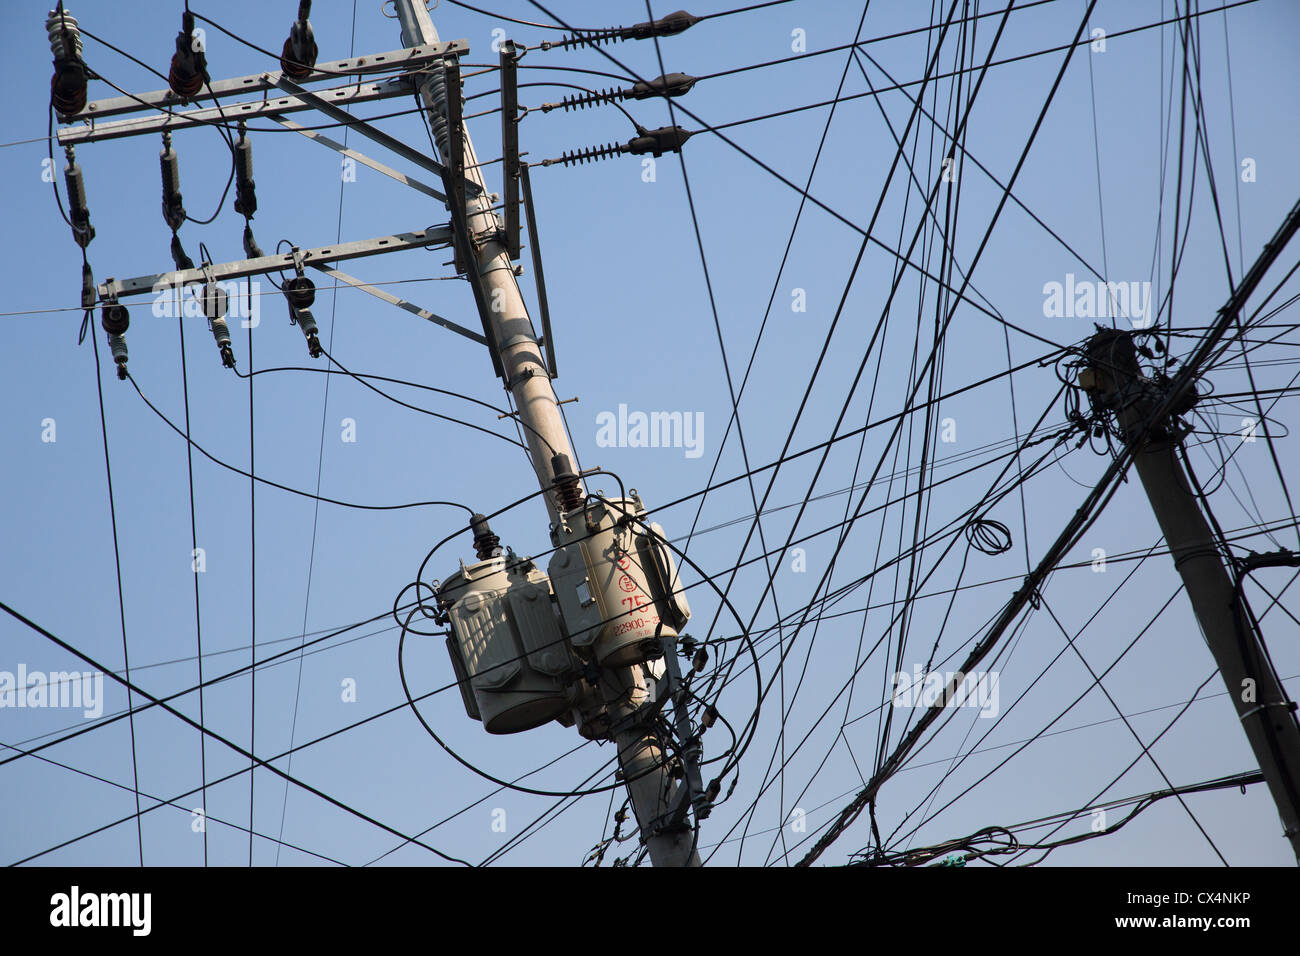 A tangle of electrical power lines overhead - Stock Image